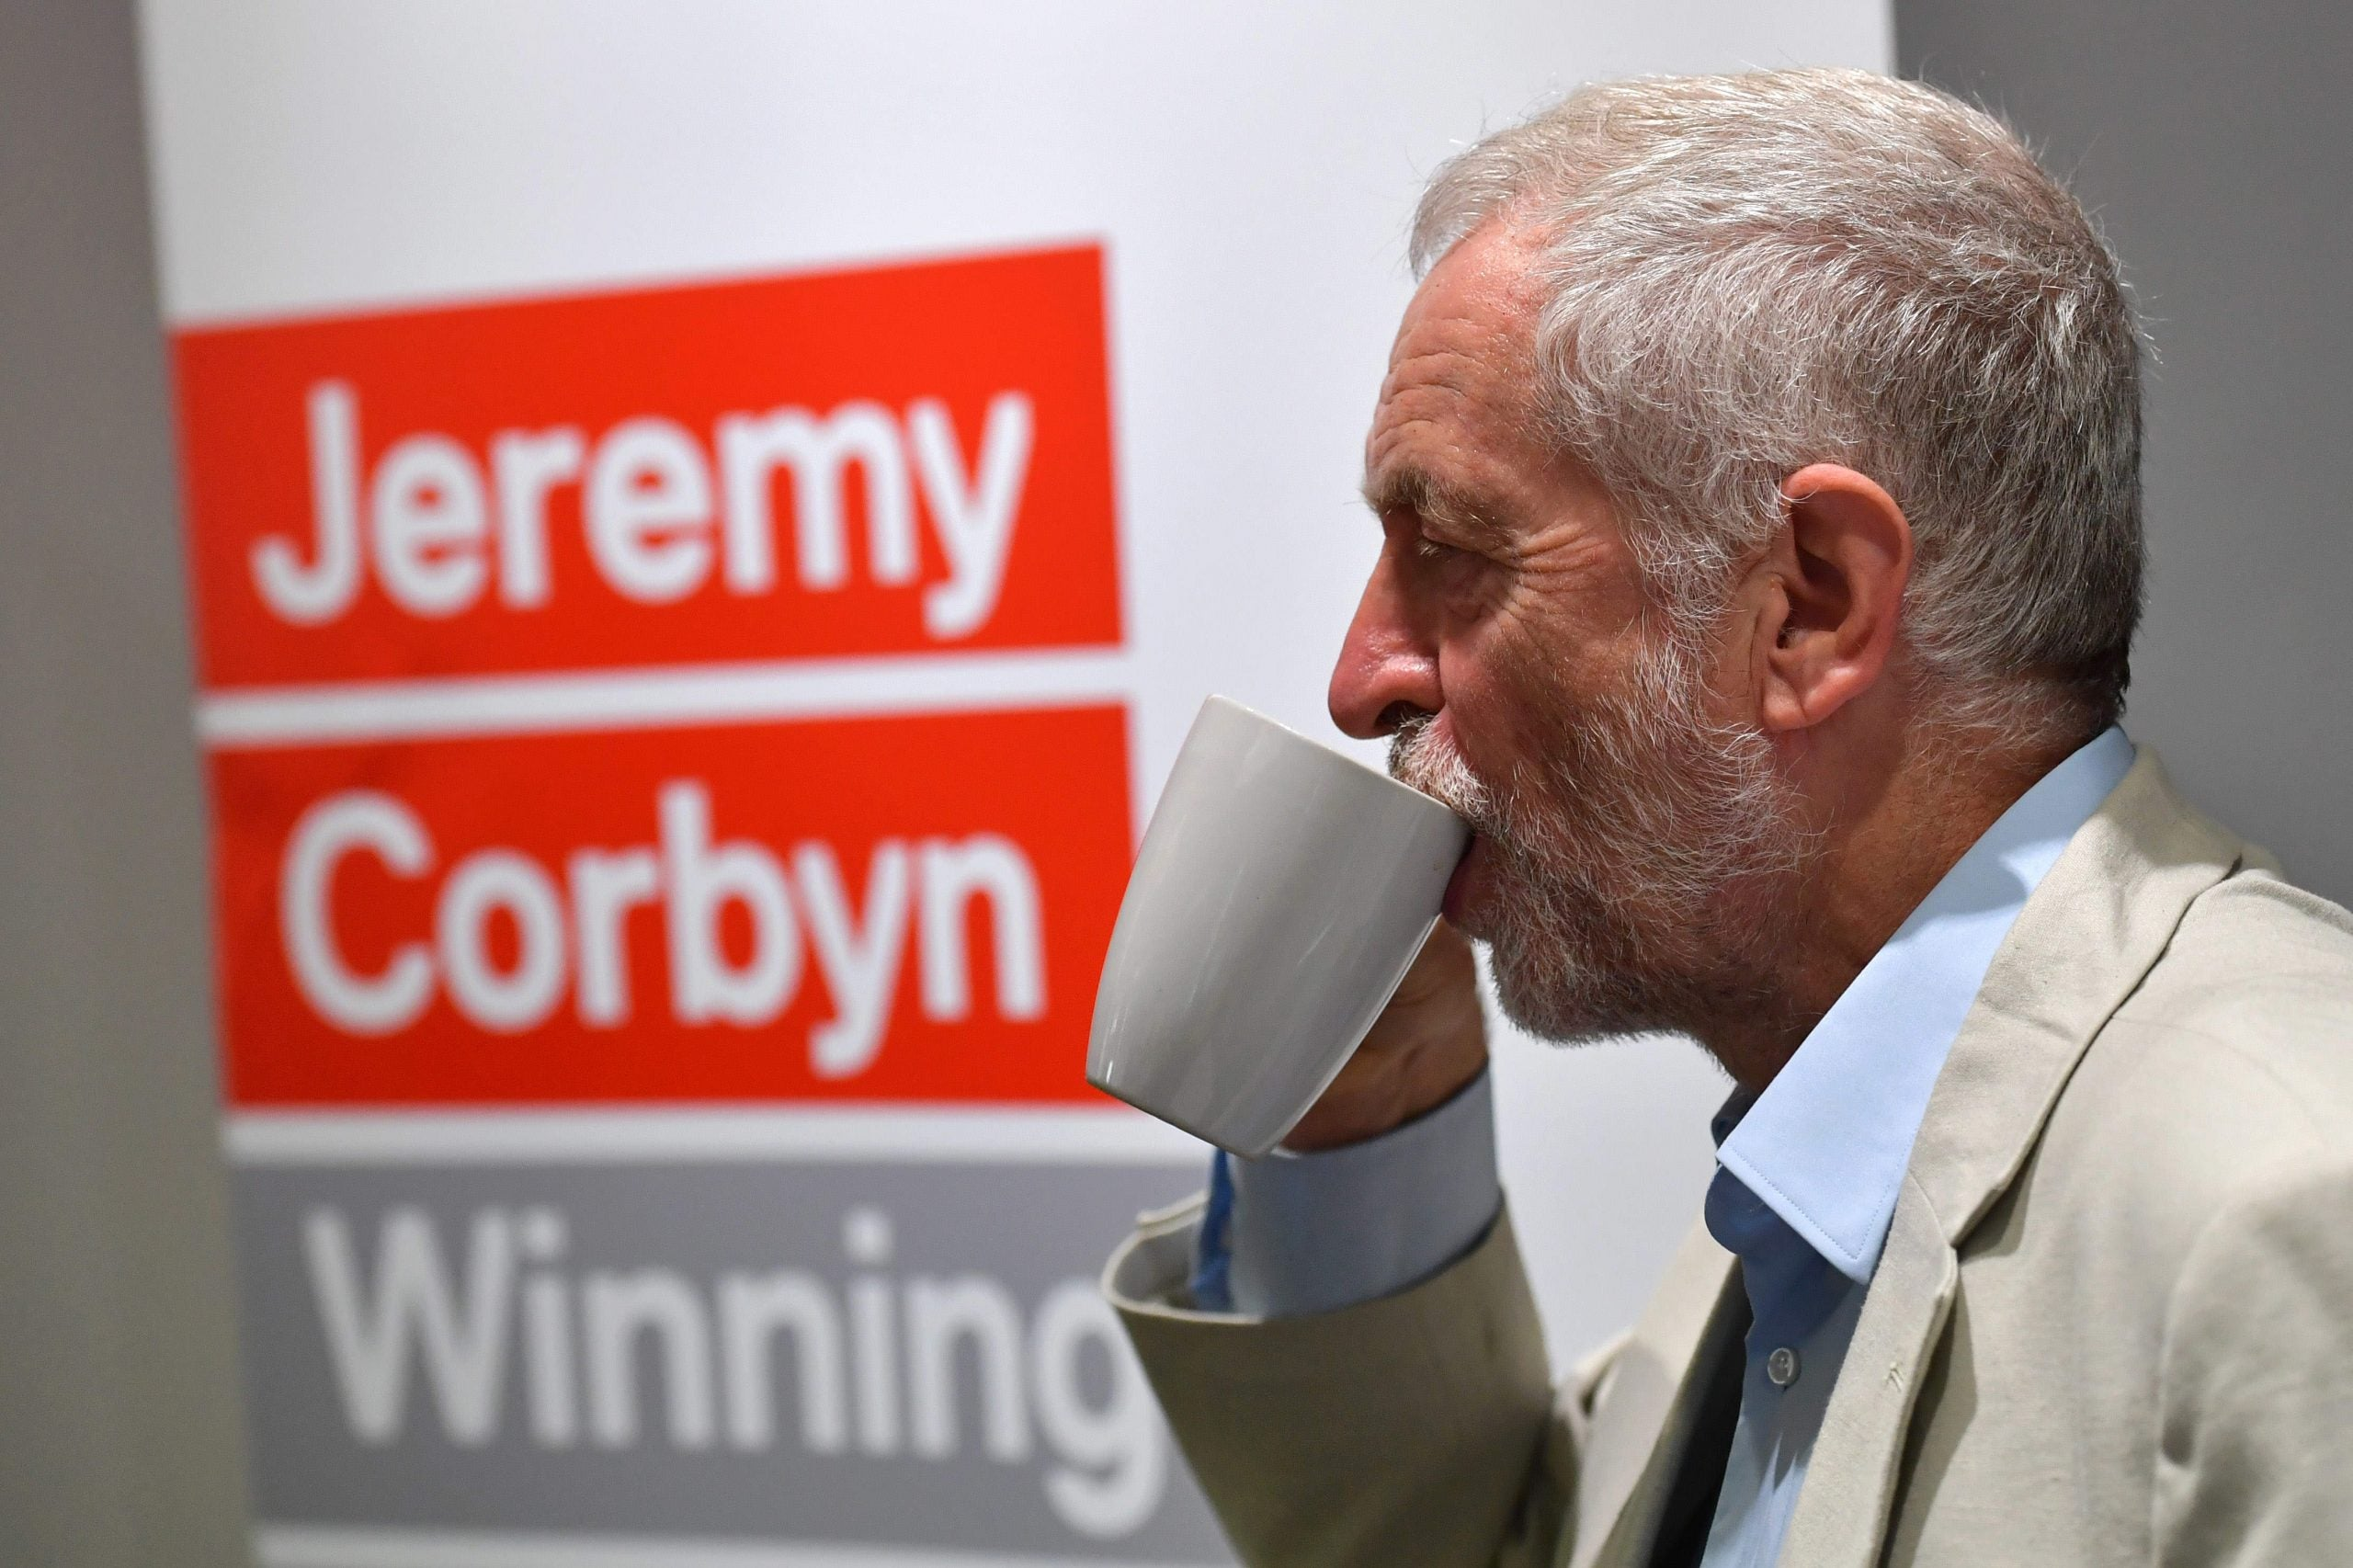 Jeremy Corbyn's re-election would give the Labour left a chance to assure its supremacy